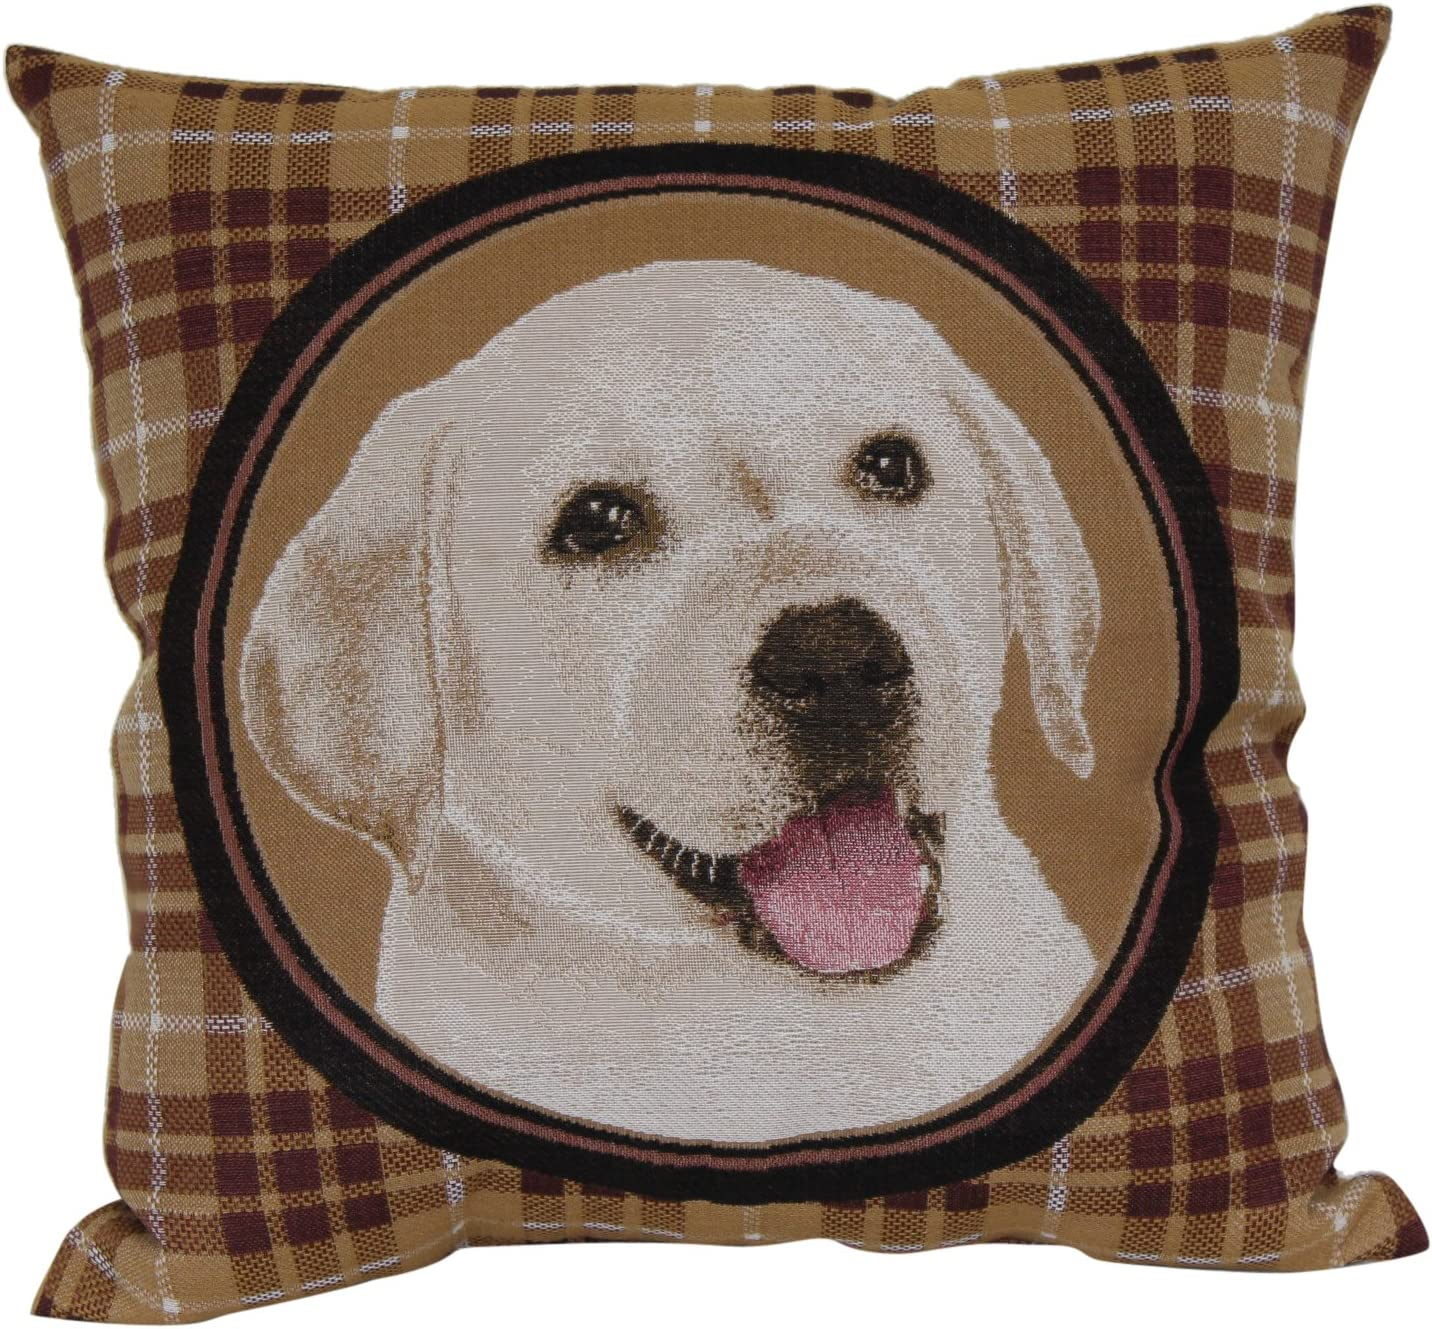 Brentwood 8238 Decorative Throw Pillow